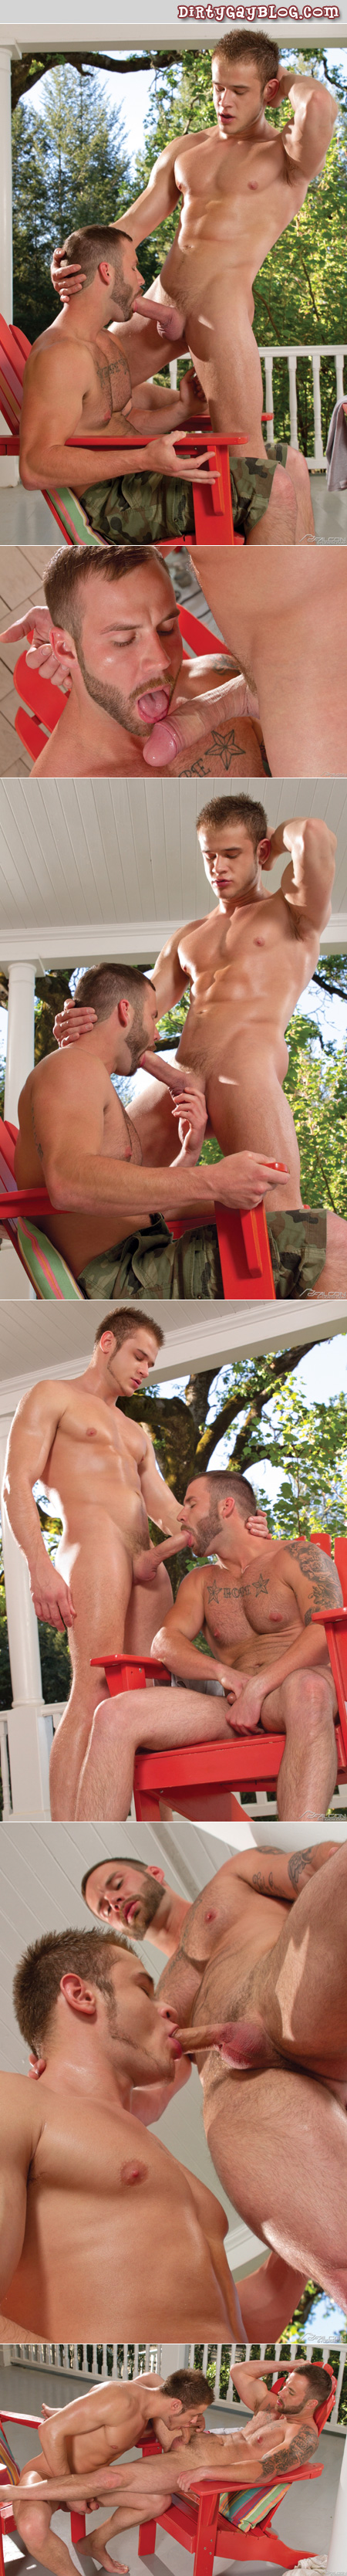 Handsome, tattooed guy sucking a blonde guy's big uncut cock on the front porch.